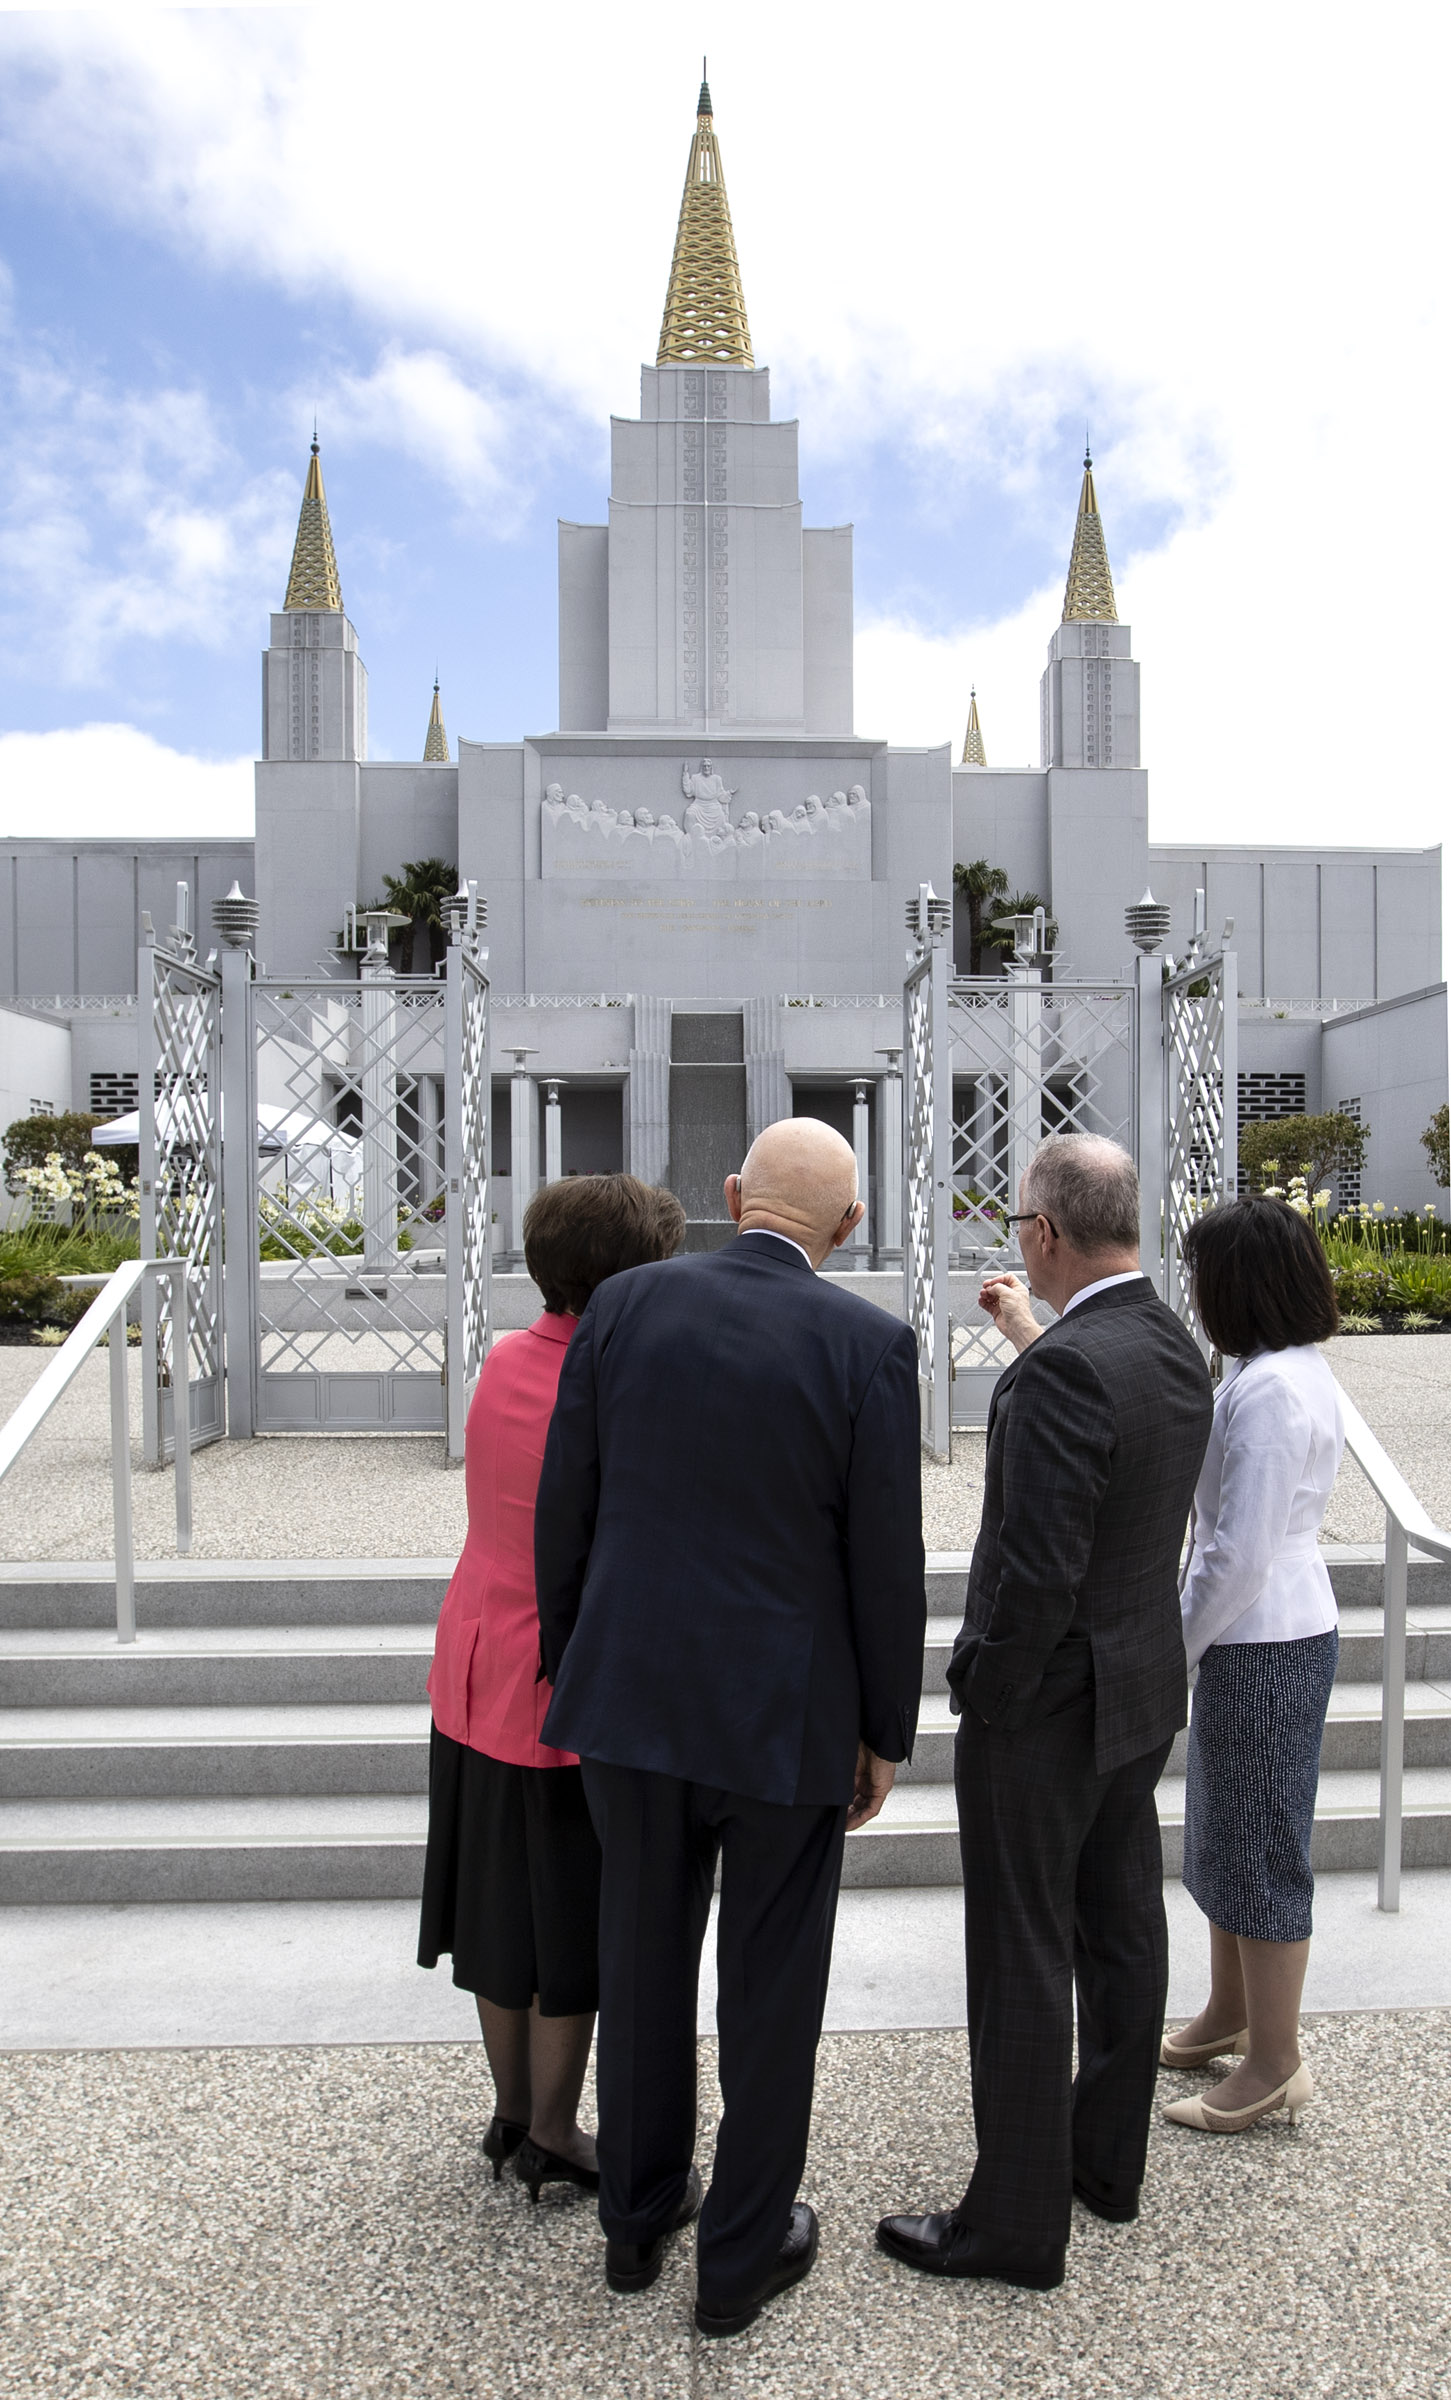 Thomas E. Coburn, managing director of the Temple Department, and his wife, Ana María Coburn, right, point out new areas of the Oakland California Temple as President Dallin H. Oaks, first counselor in the First Presidency, and his wife, Sister Kristen Oaks, arrive for a walk-through on Saturday, June 15, 2019.